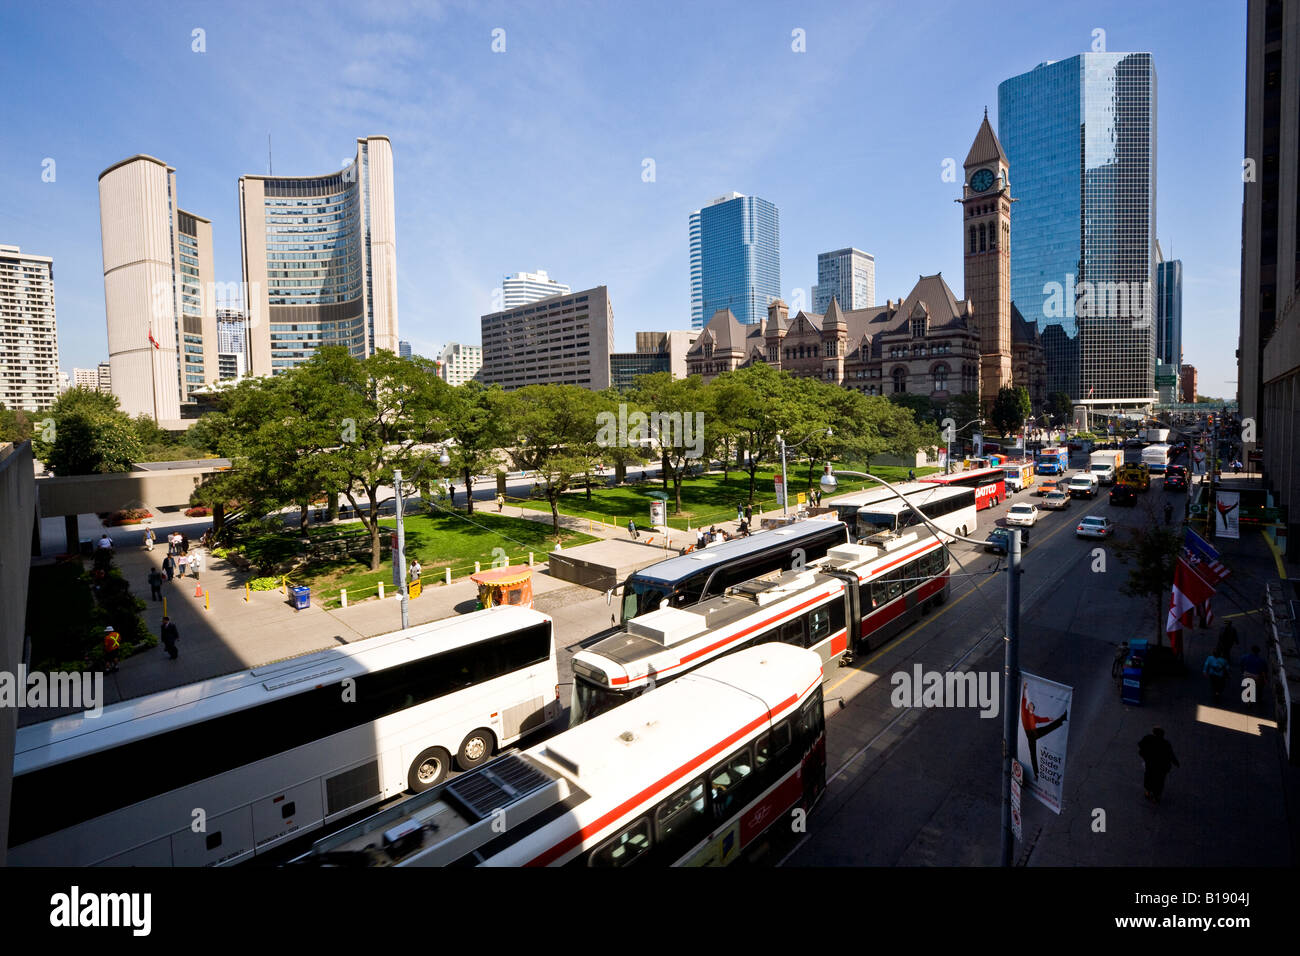 Tourist buses and TTC streetcars on Queen Street in front of both New and Old City Halls, Toronto, Ontario, Canada. - Stock Image